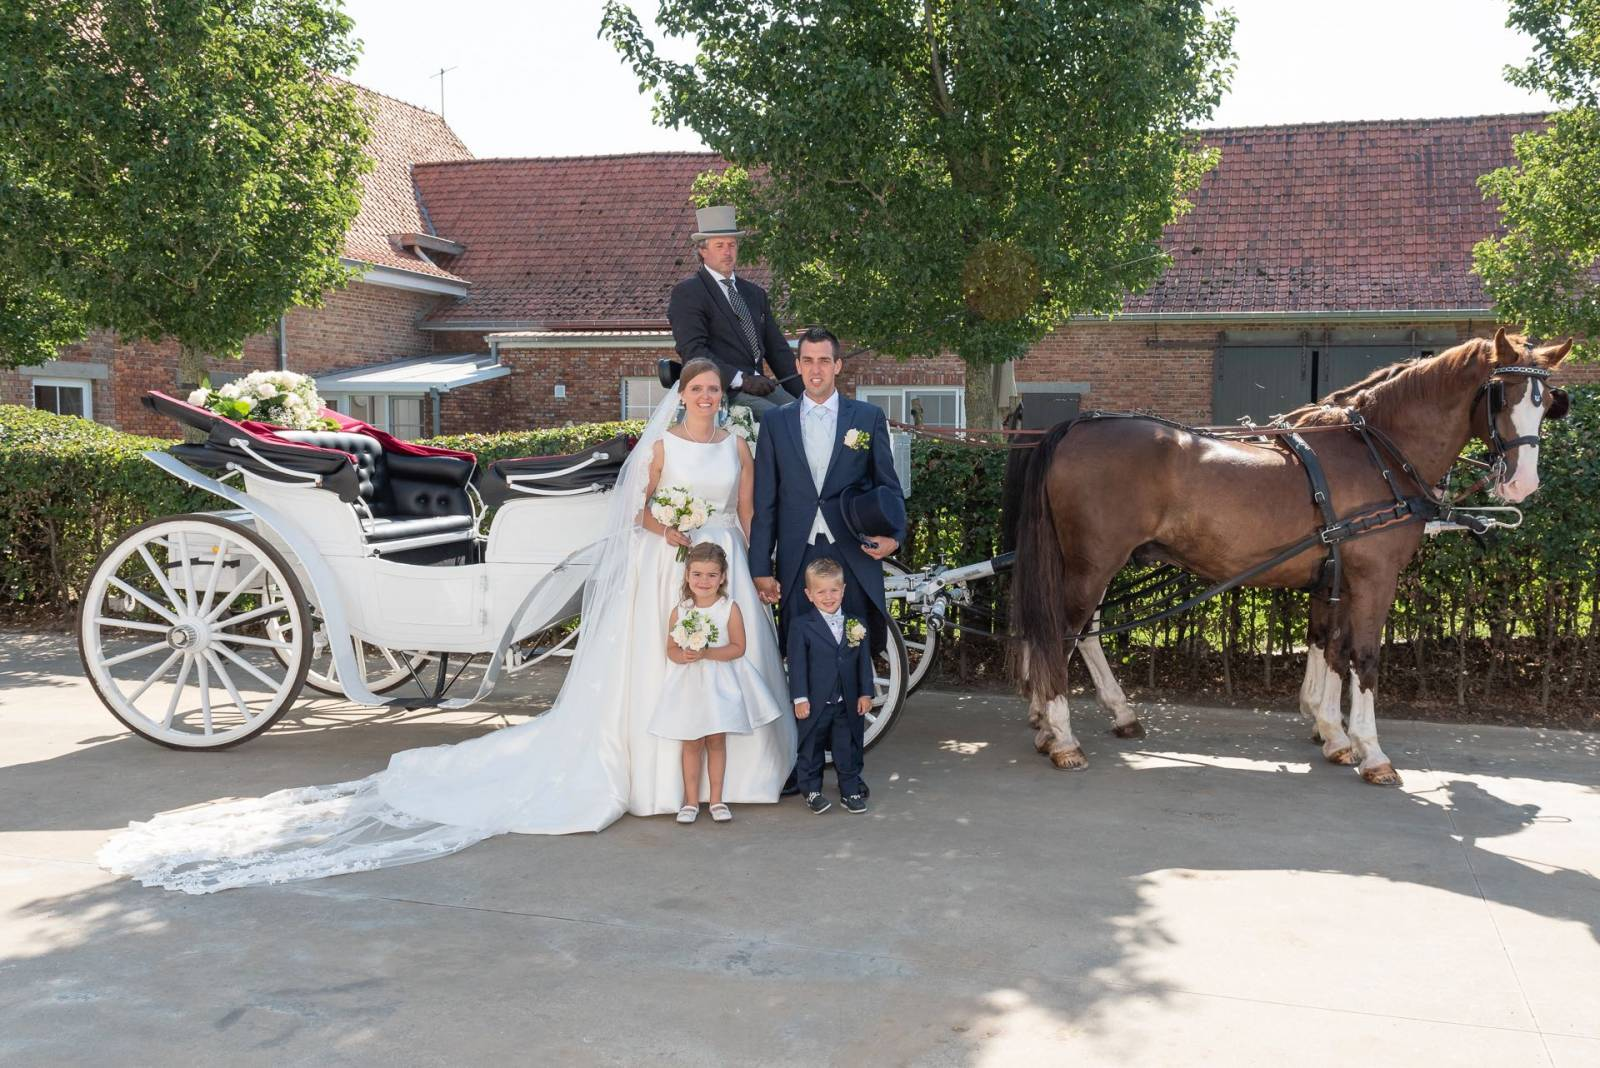 Manorhoeve - Trouwkoets - Ceremonievervoer - House of Weddings - 15